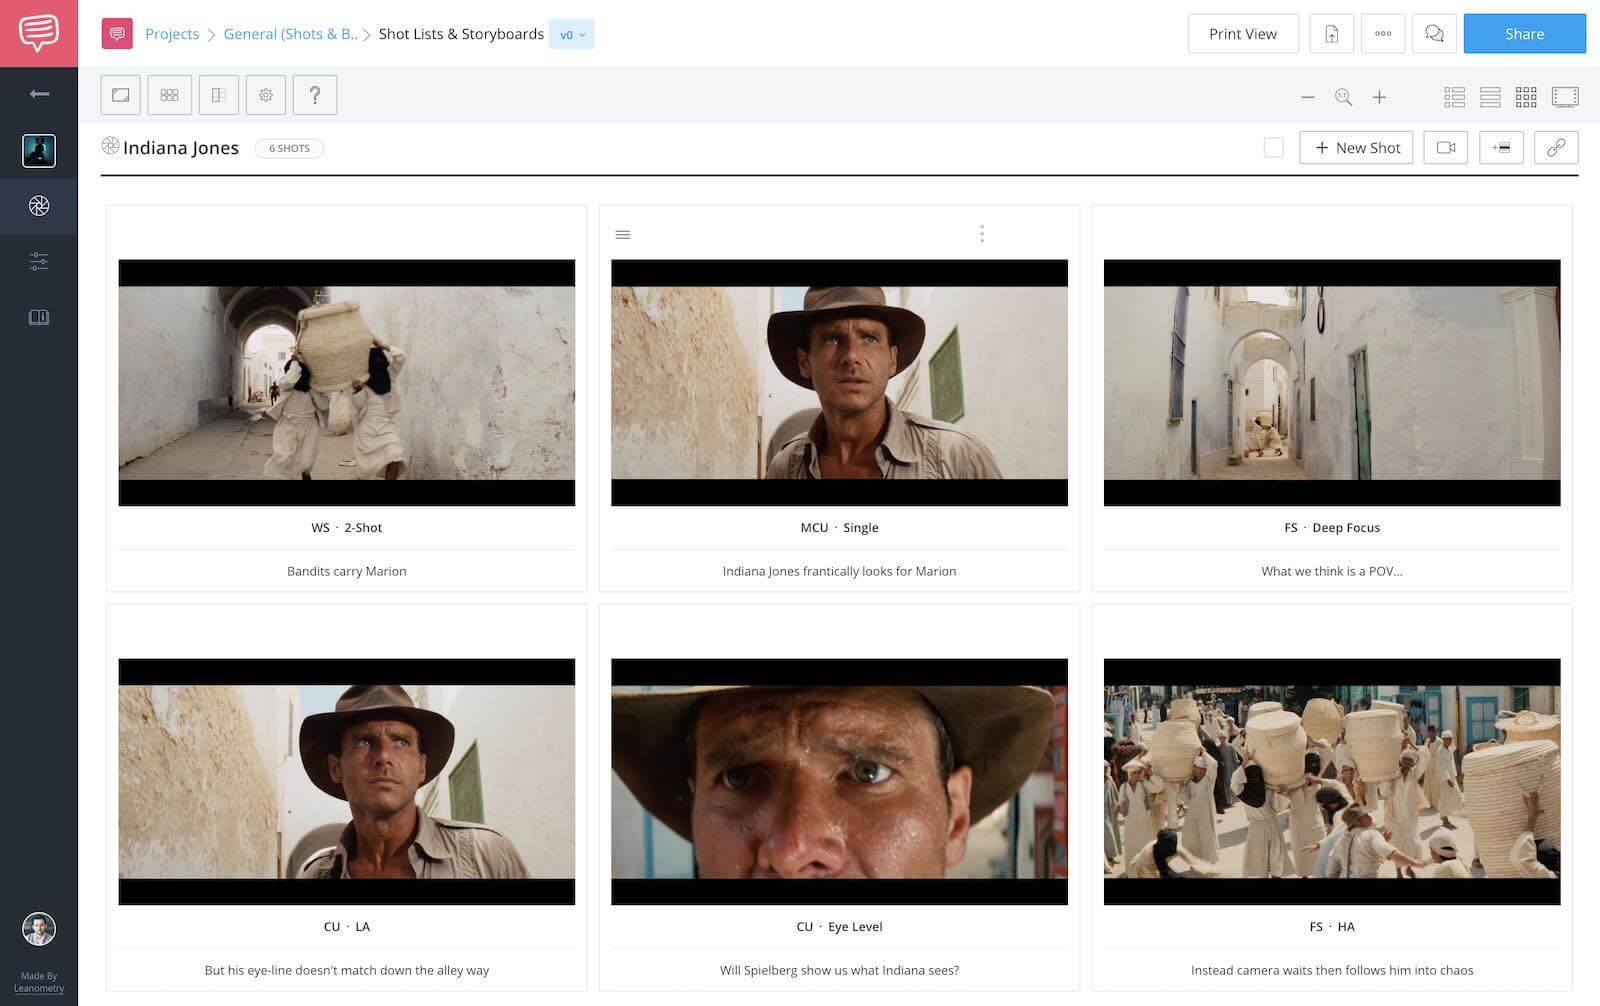 Raiders of the Lost Ark - Spielberg Filmmaking Style - StudioBinder Shot List